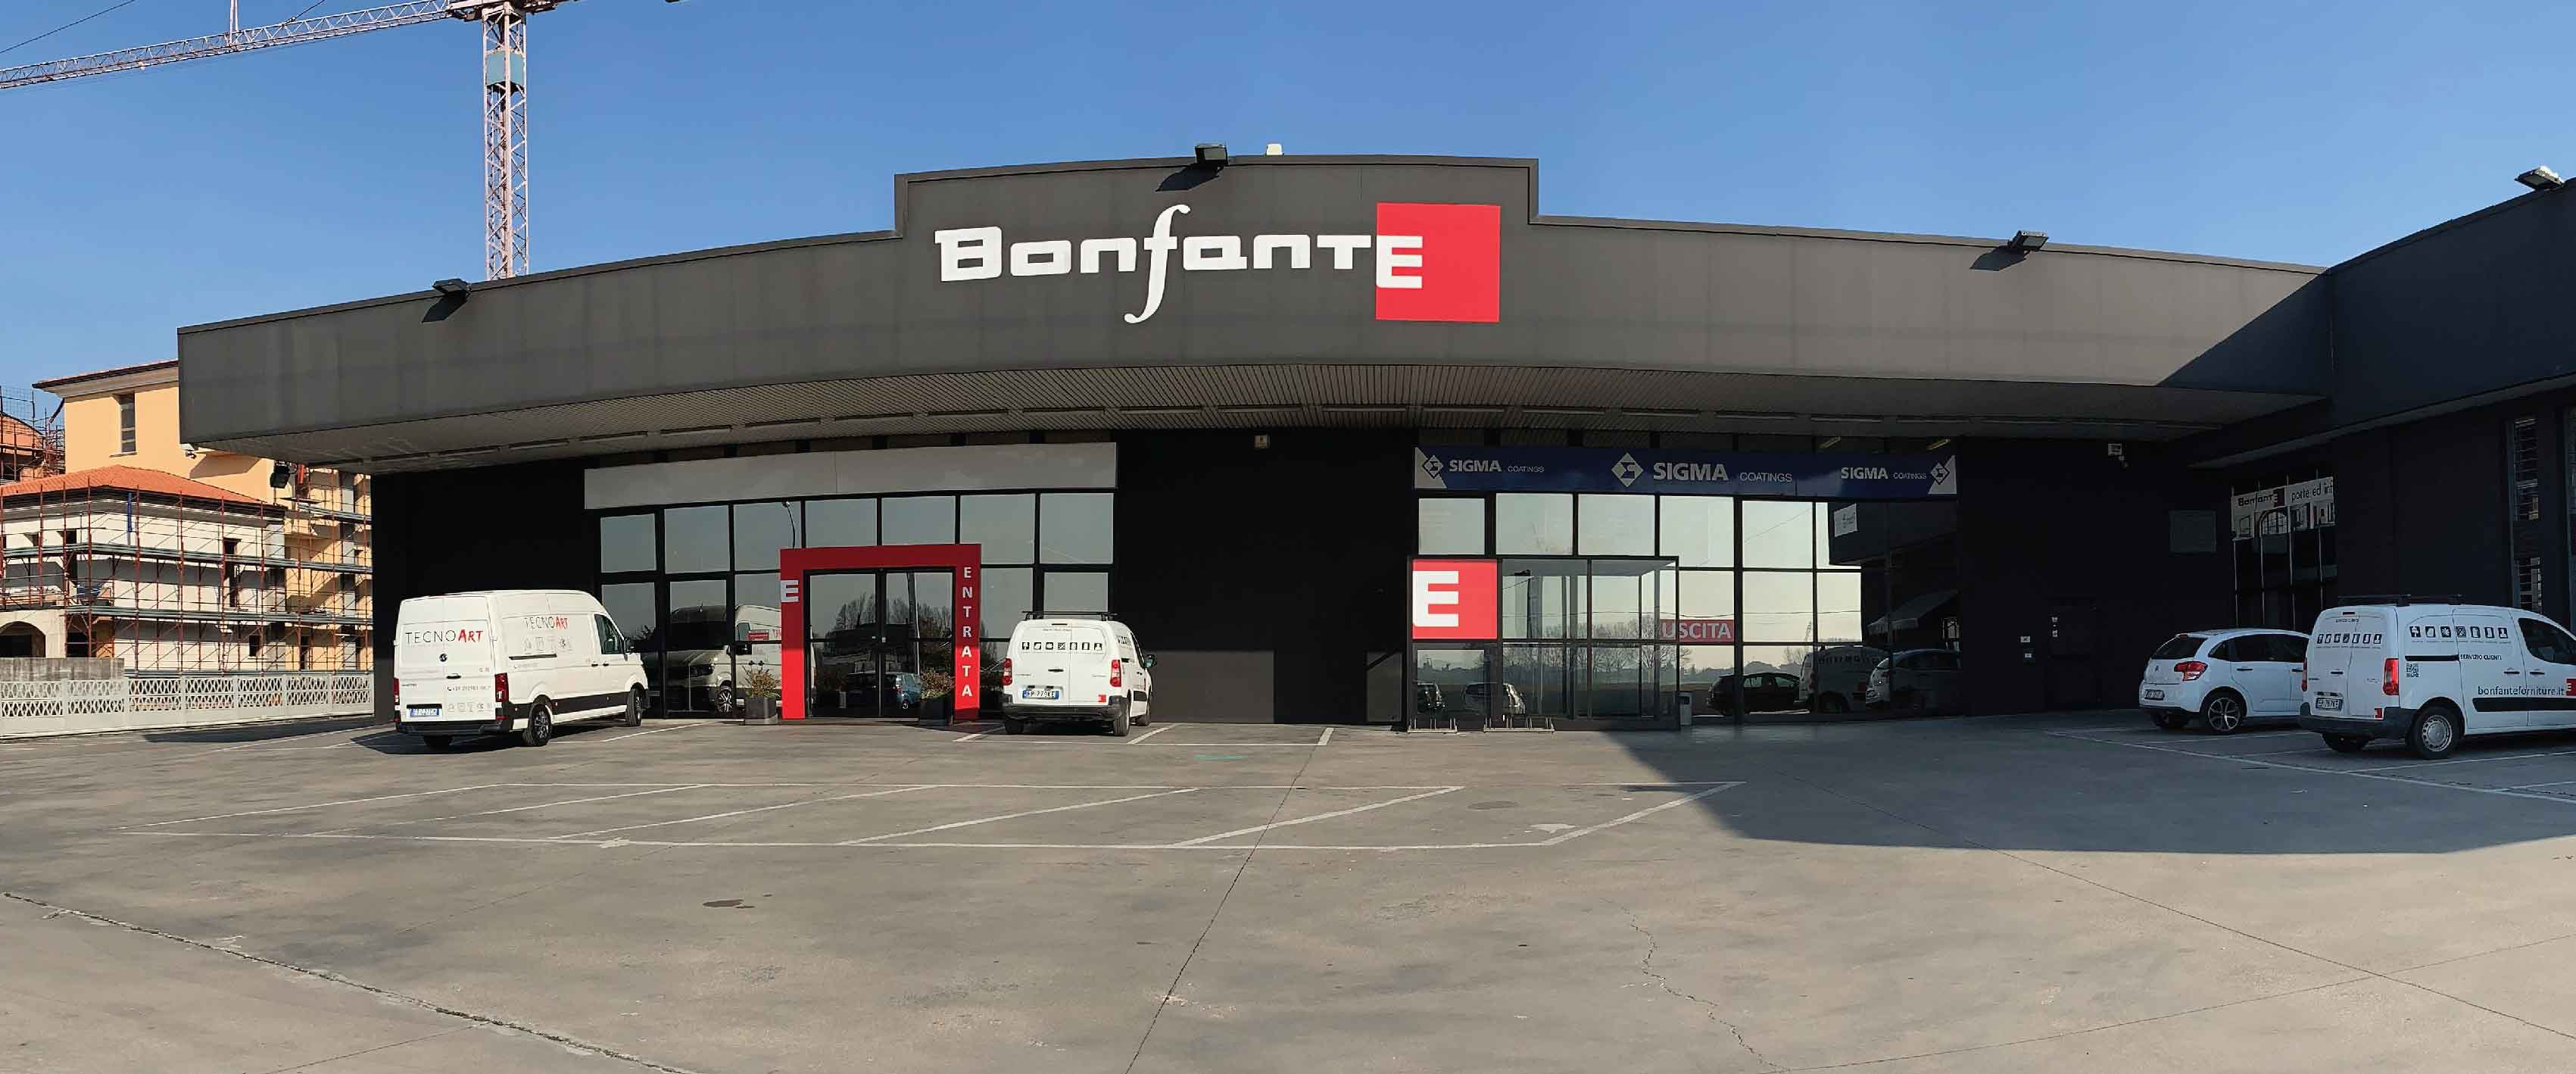 Colorificio Bonfante Forniture